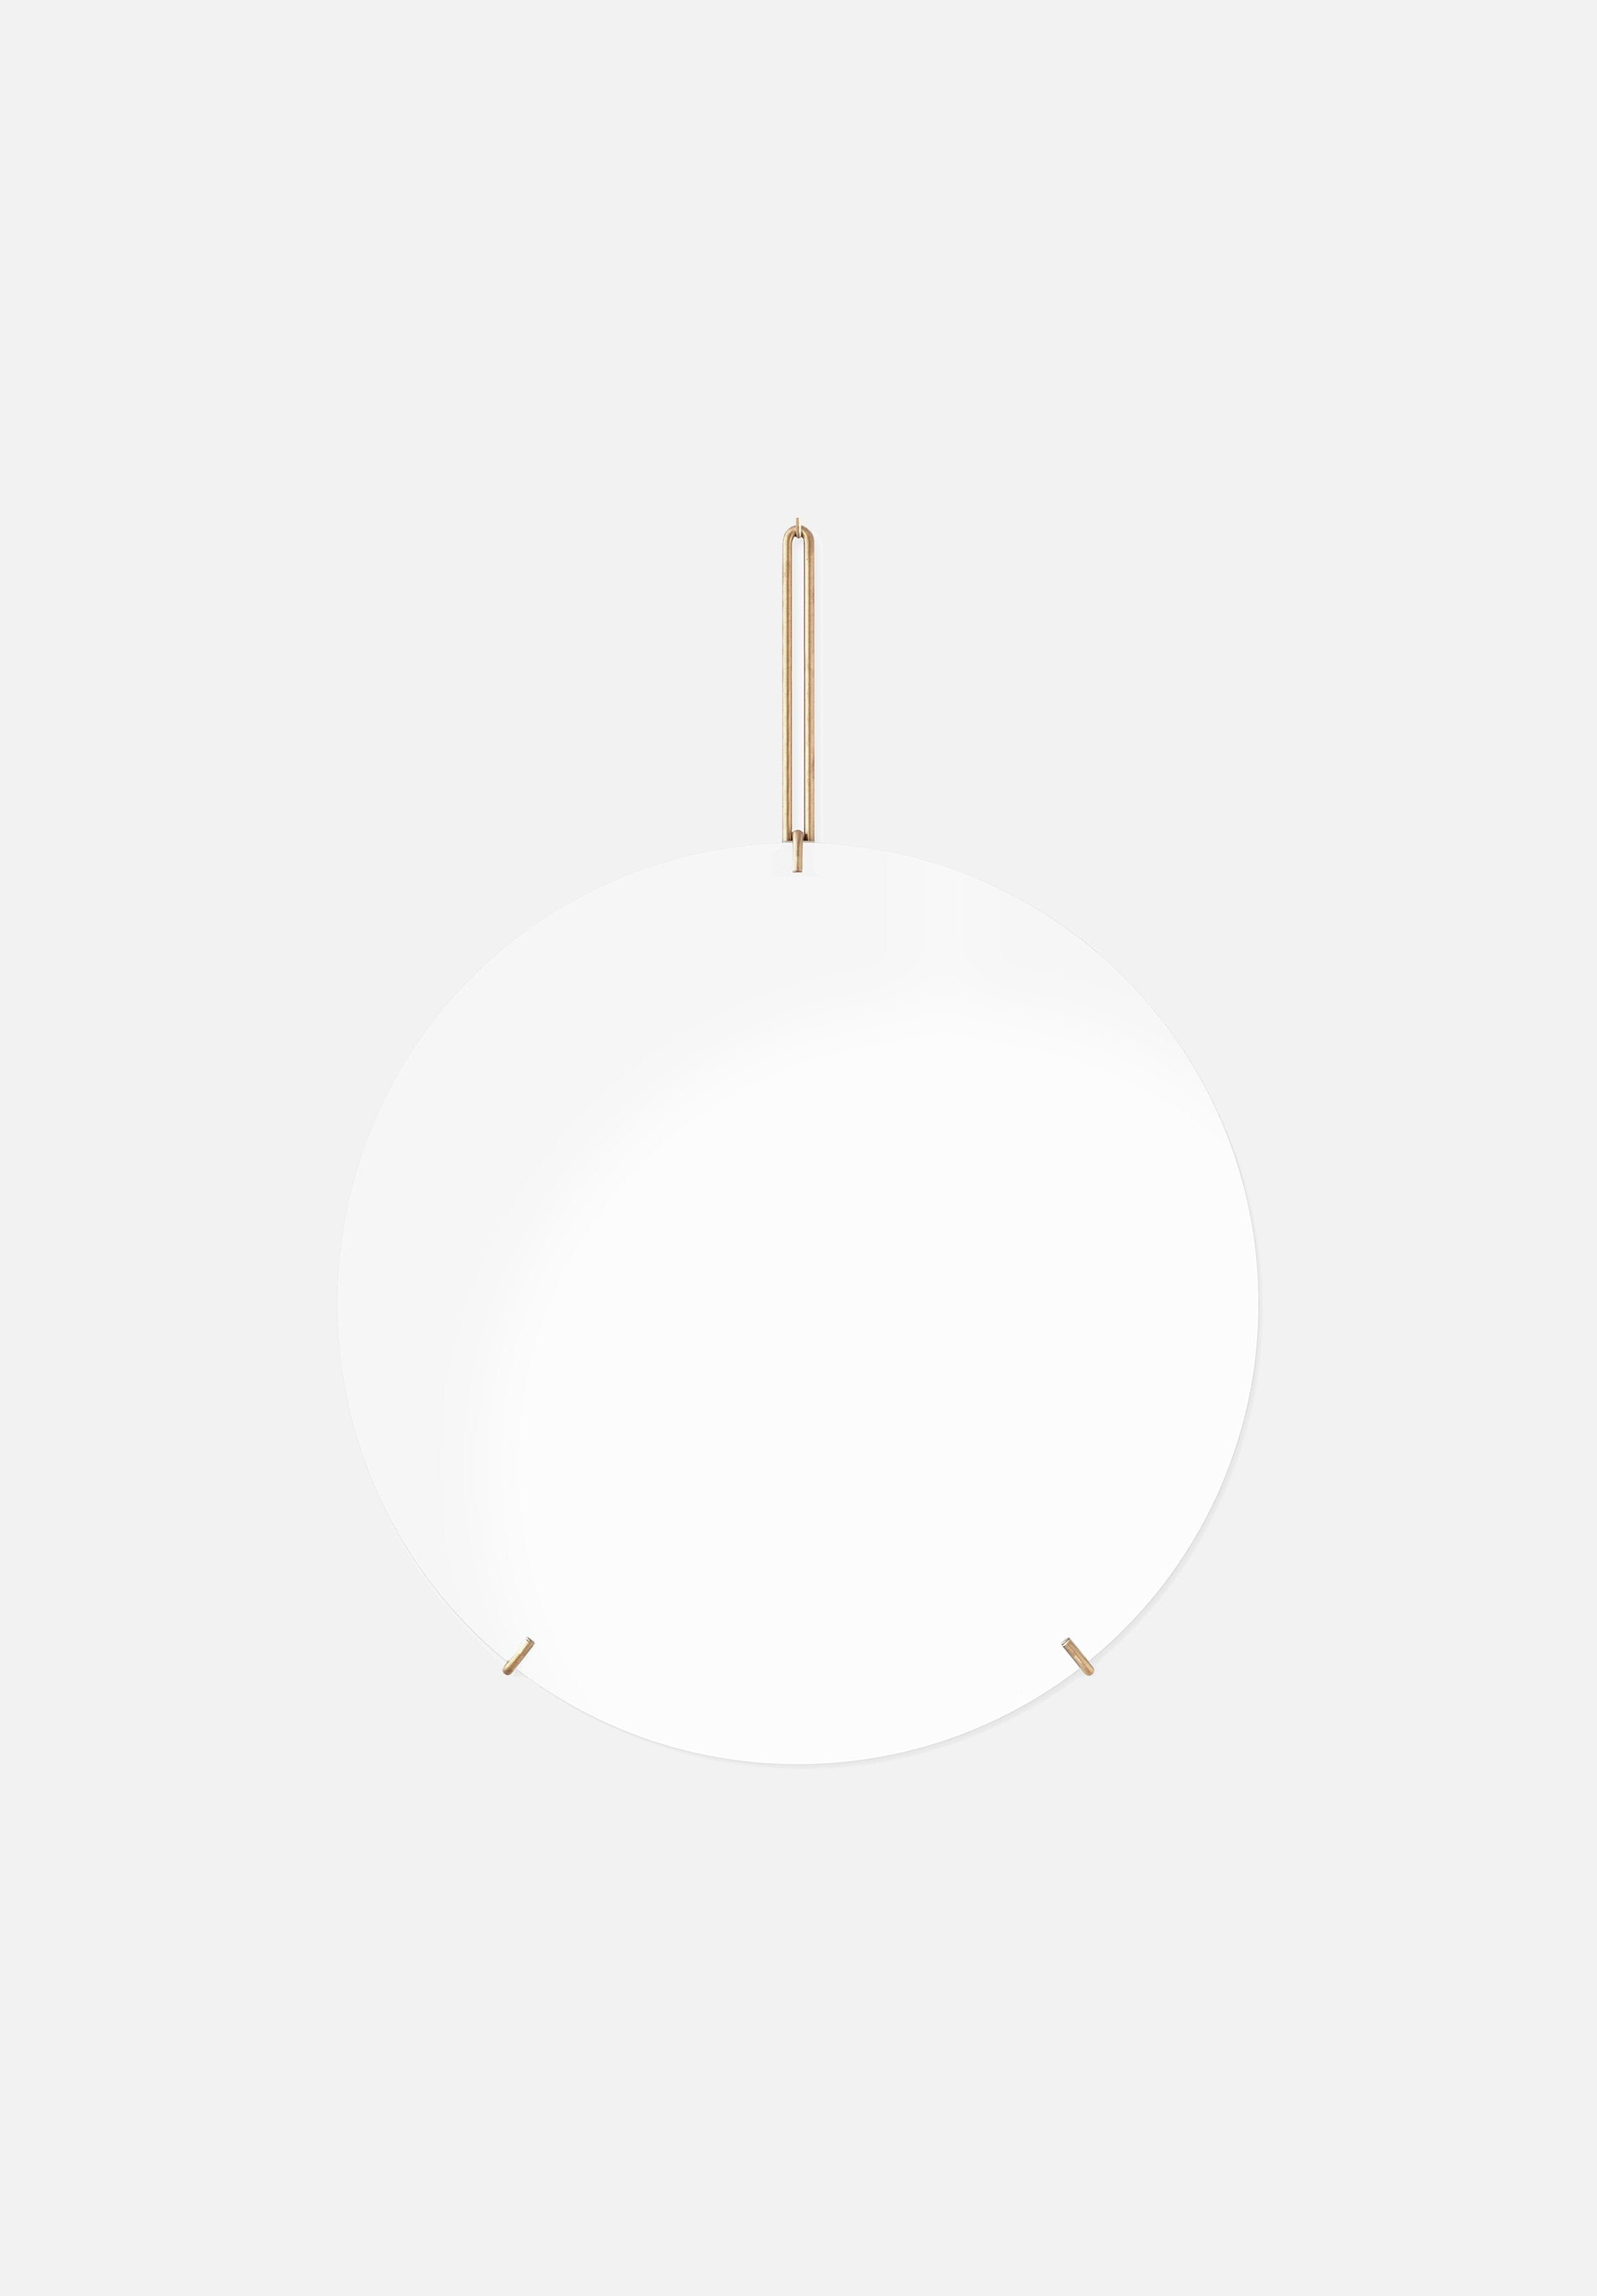 Wall Mirror — 70cm-Moebe-brass-danish-interior-furniture-denmark-Average-design-toronto-canada